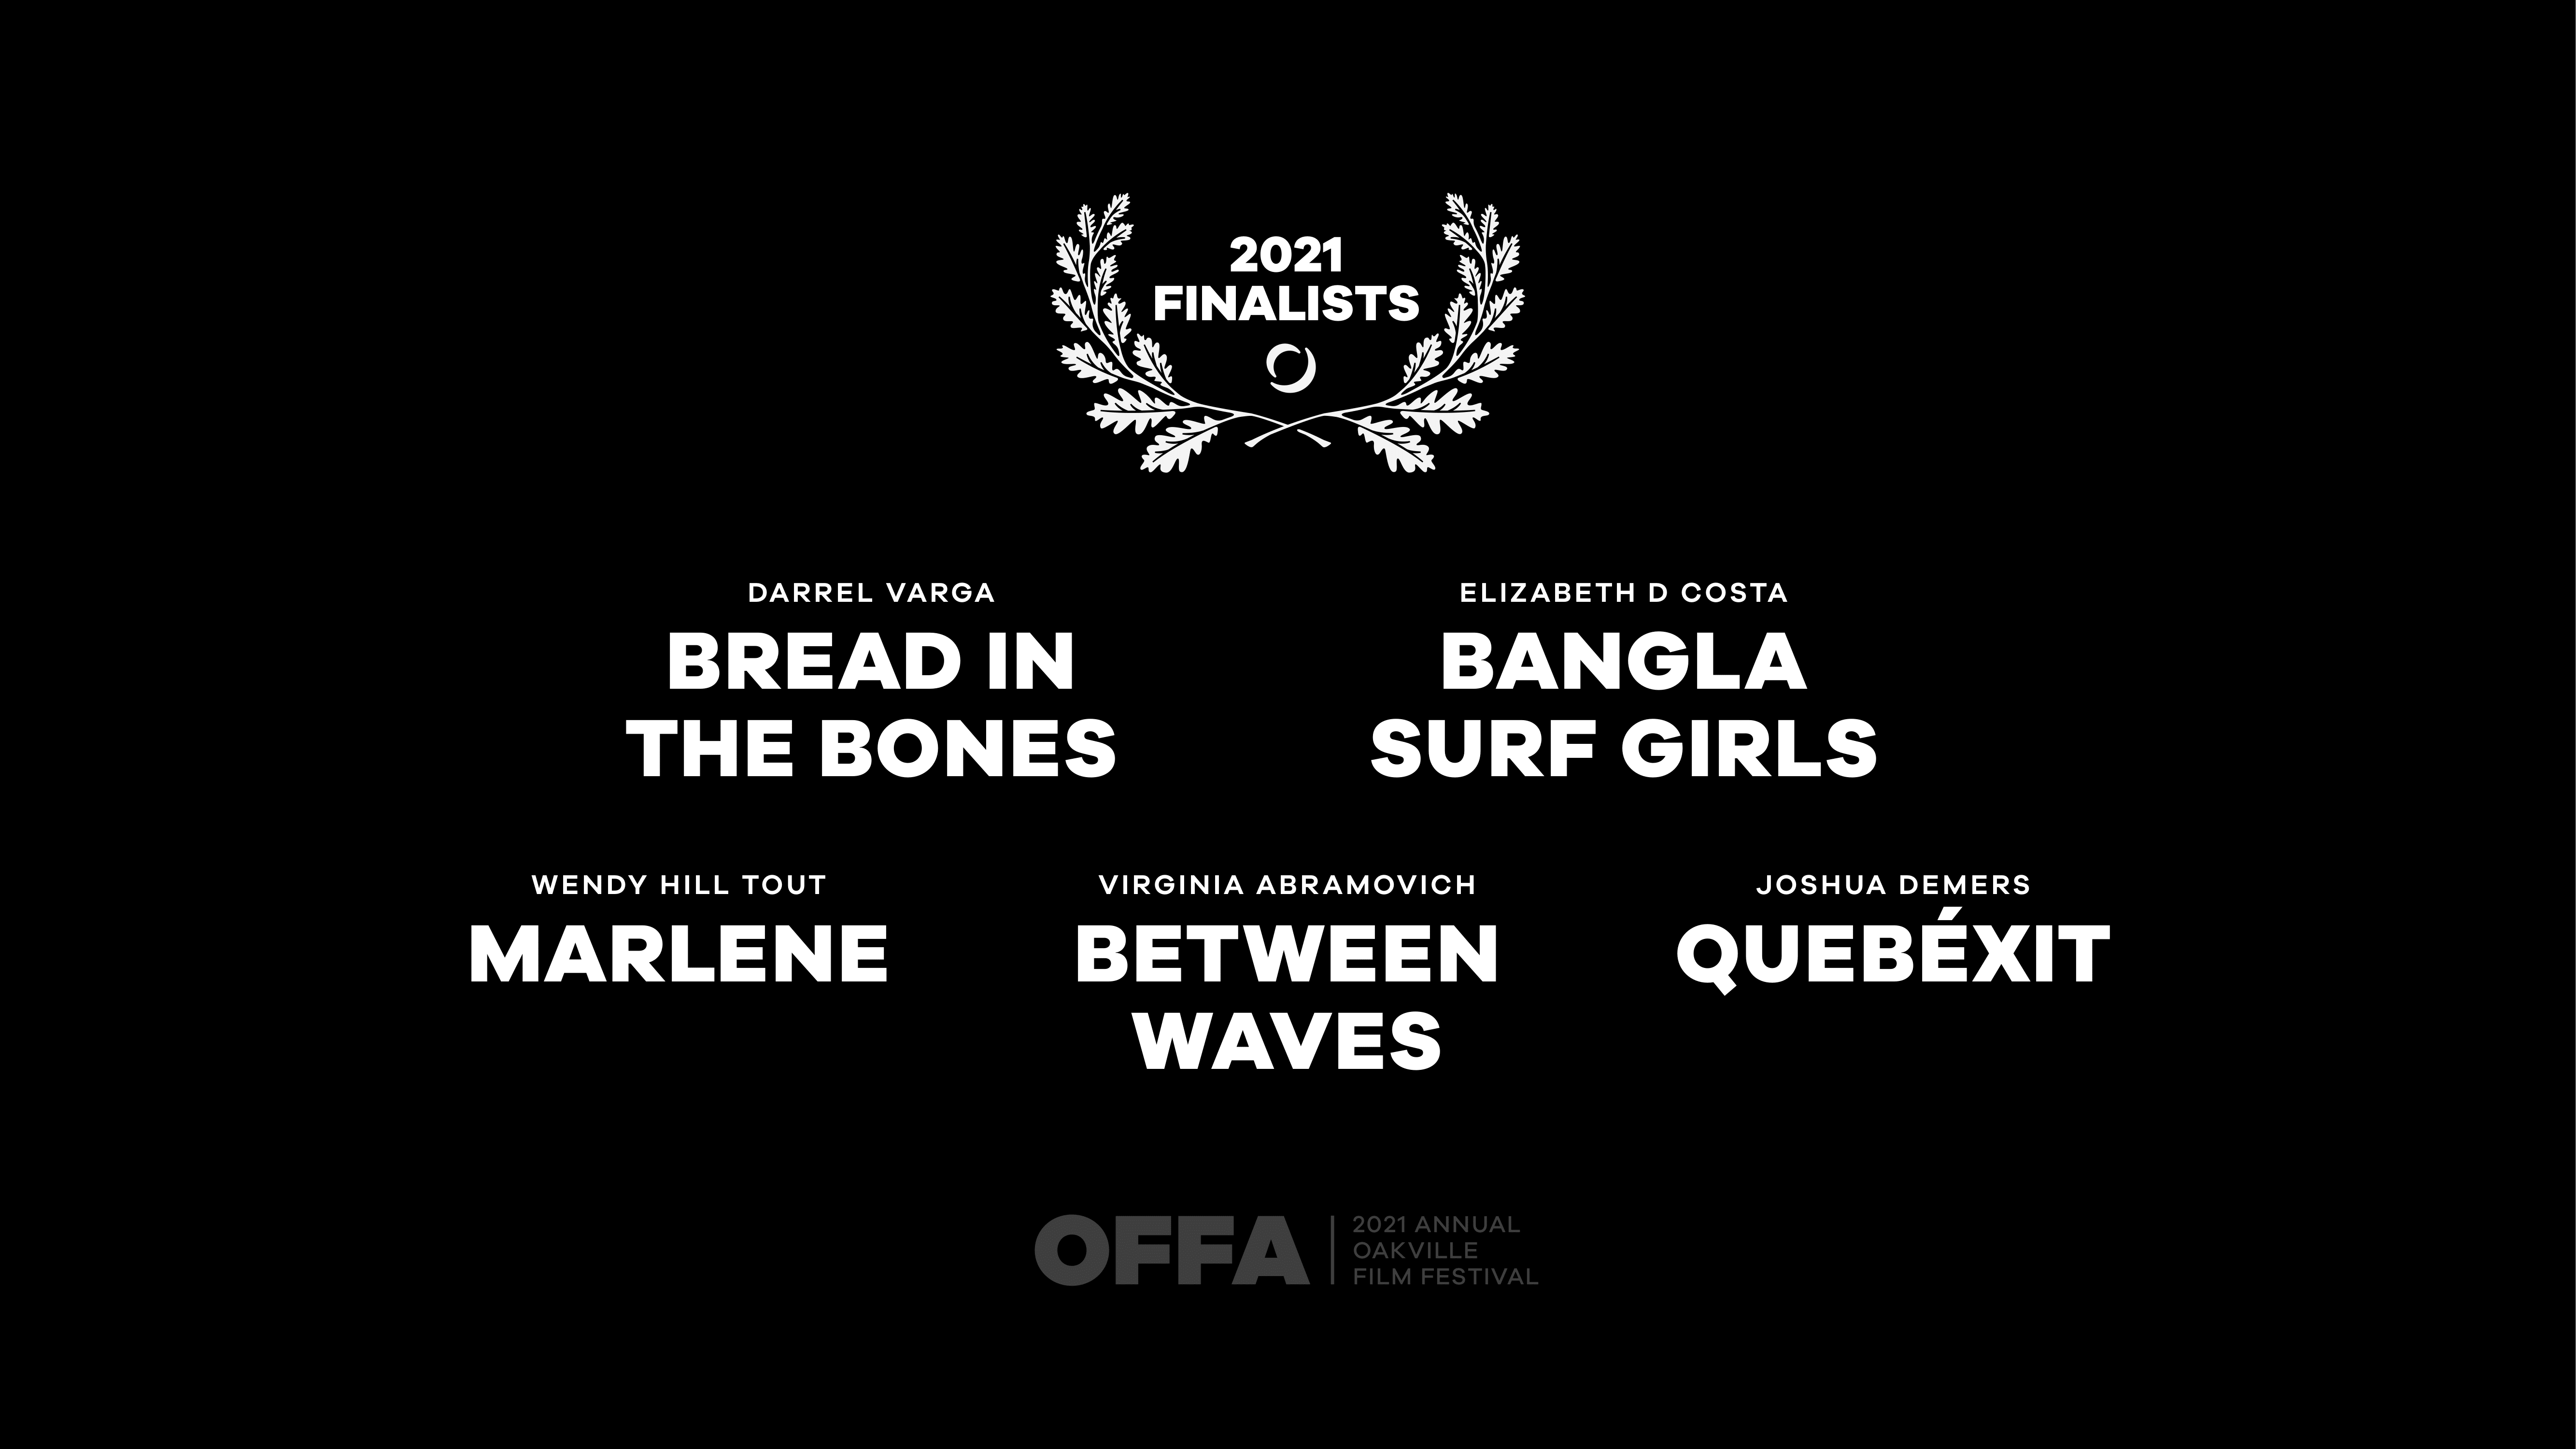 OFFA 2021 Best Canadian Feature Film or Documentary Finalists